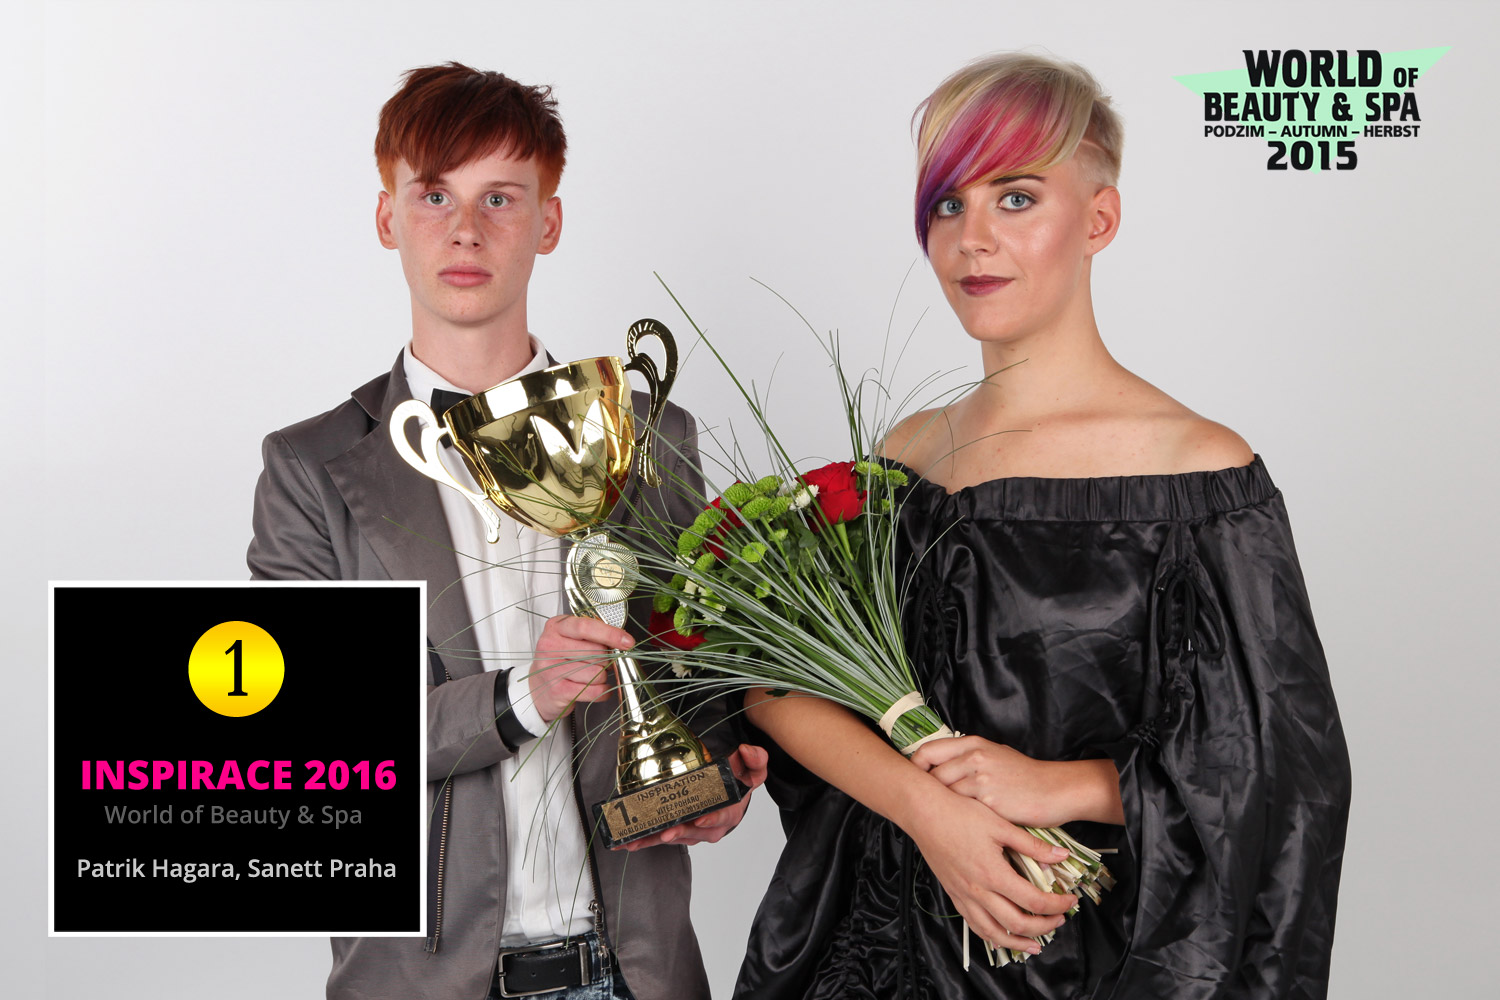 World of Beauty & Spa – Inspirace 2016: 1. místo Patrik Hagara, Sanett